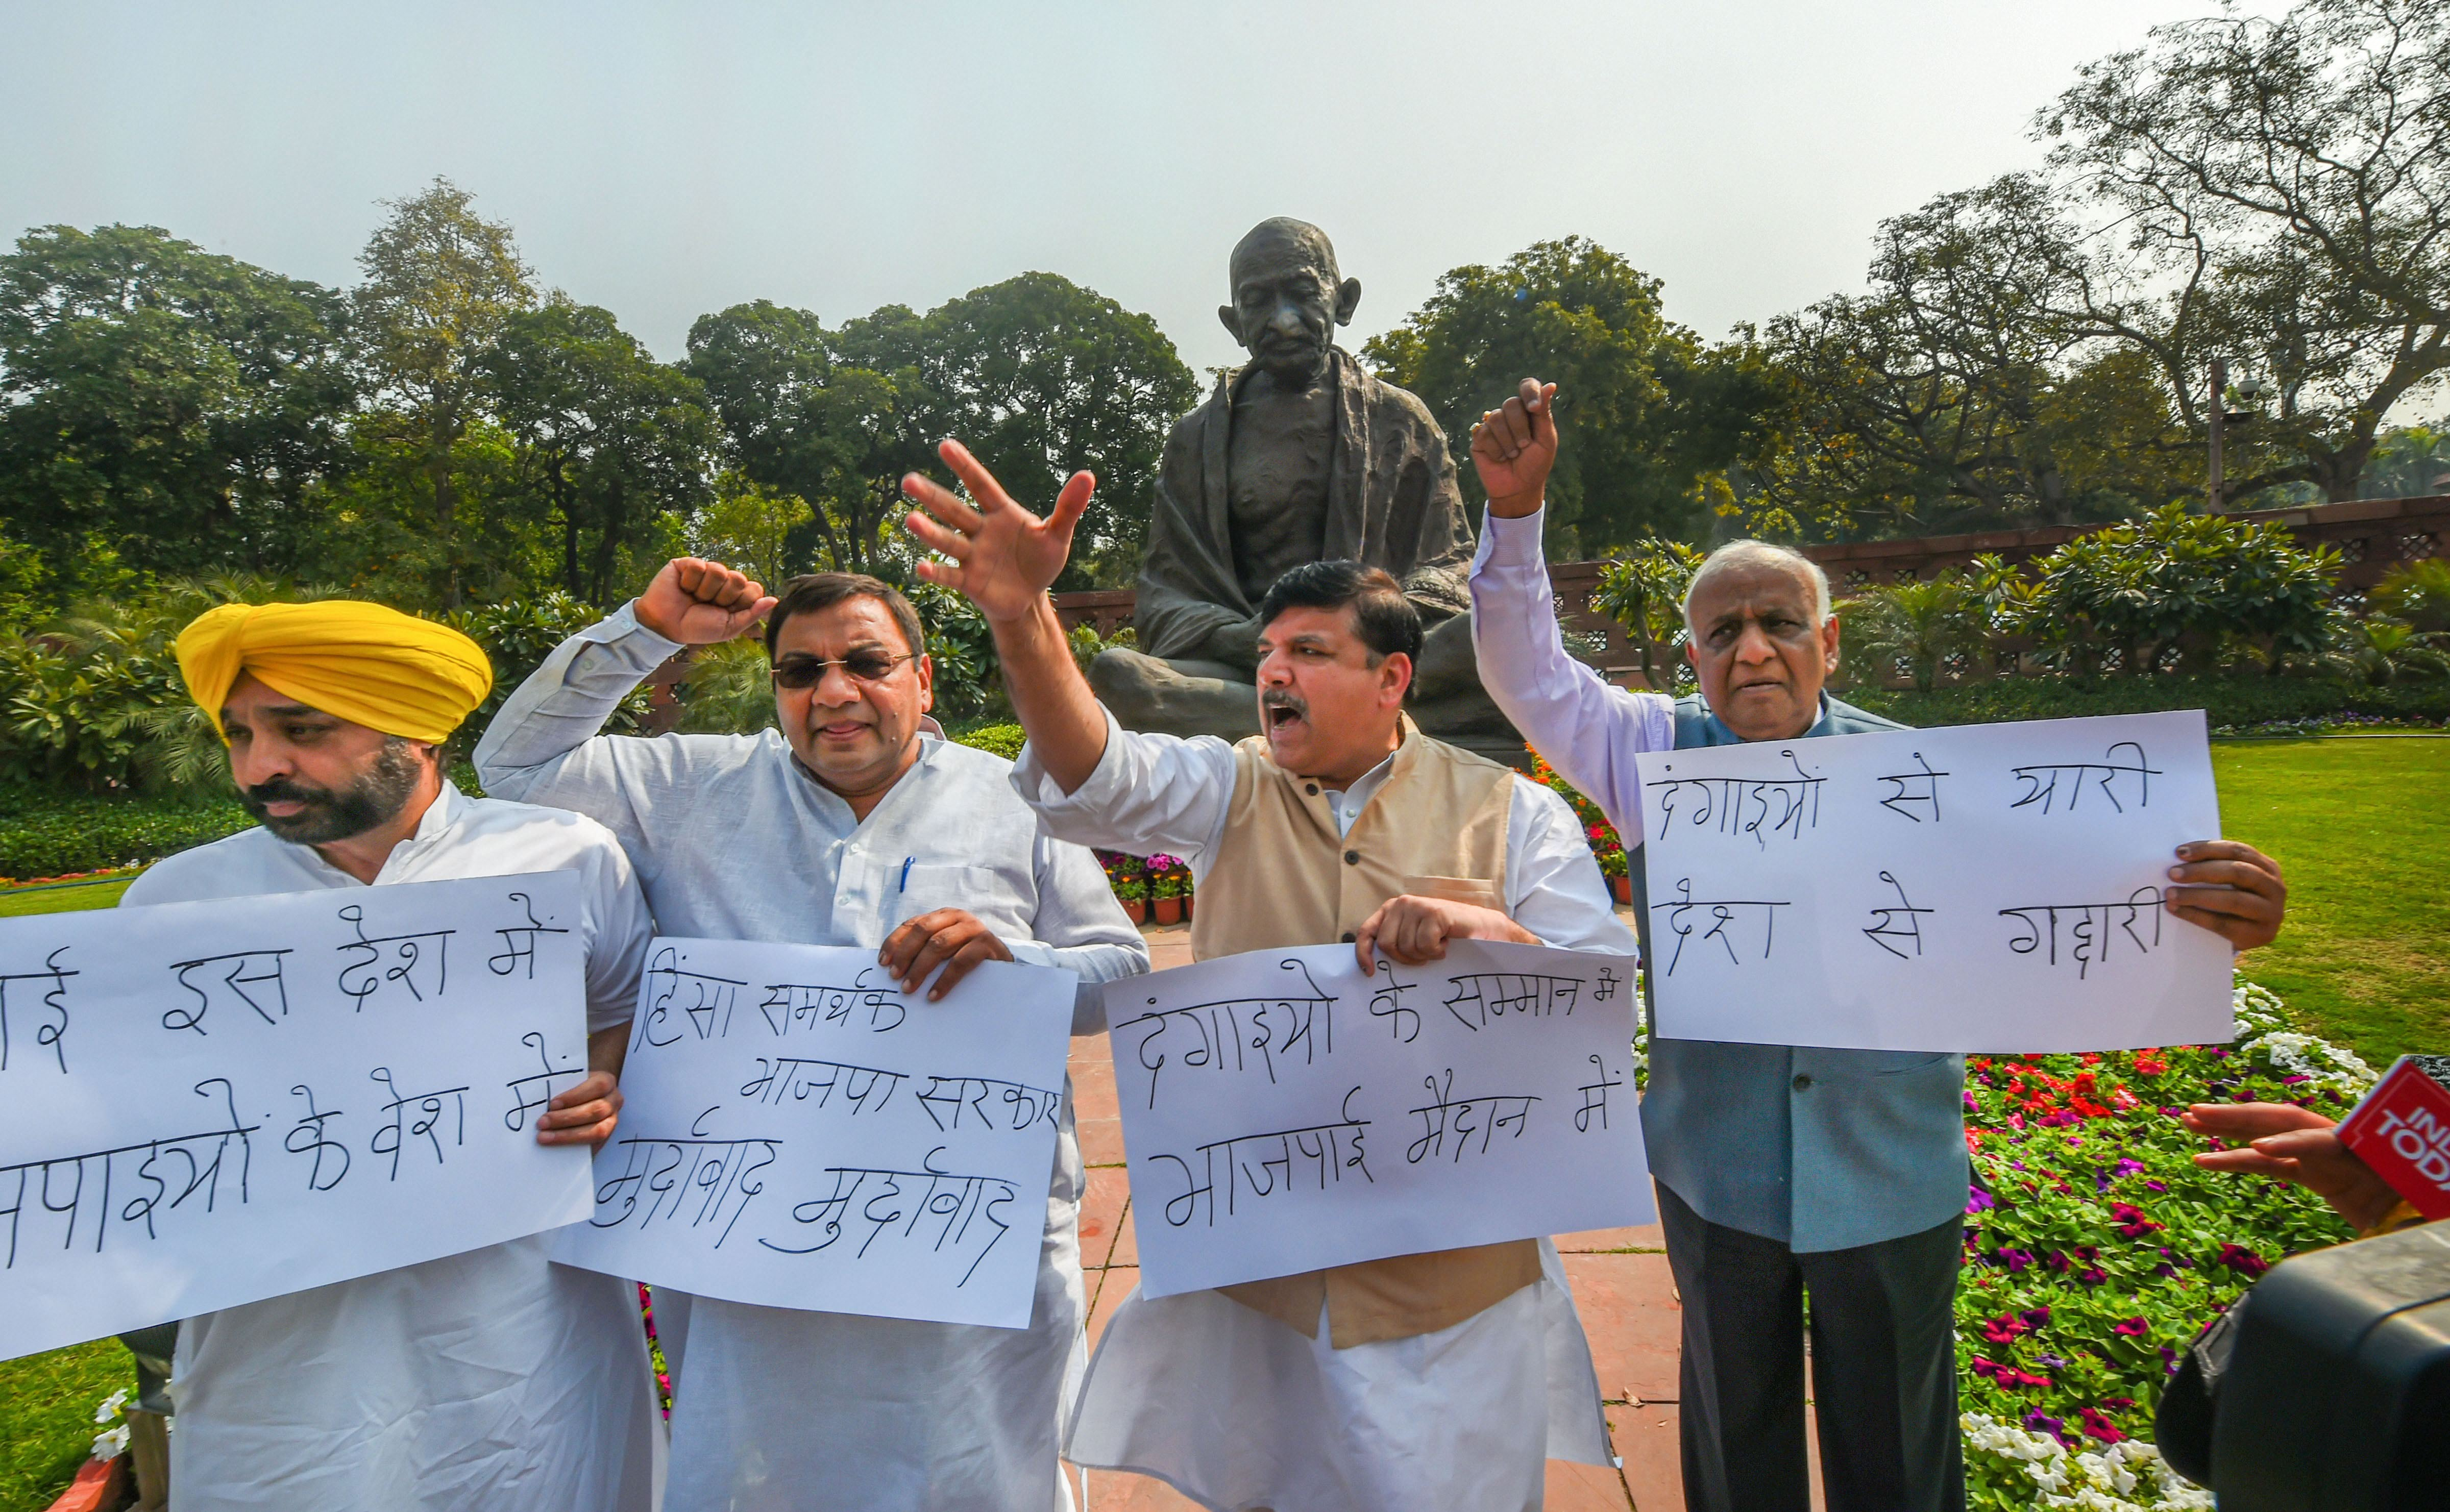 Aam Aadmi Party MPs Sanjay Singh, Bhagwant Mann, N. D. Gupta and Sushil Gupta raise slogans during a protest over Delhi violence, at Parliament during the ongoing Budget Session, in New Delhi, Monday, March 2, 2020